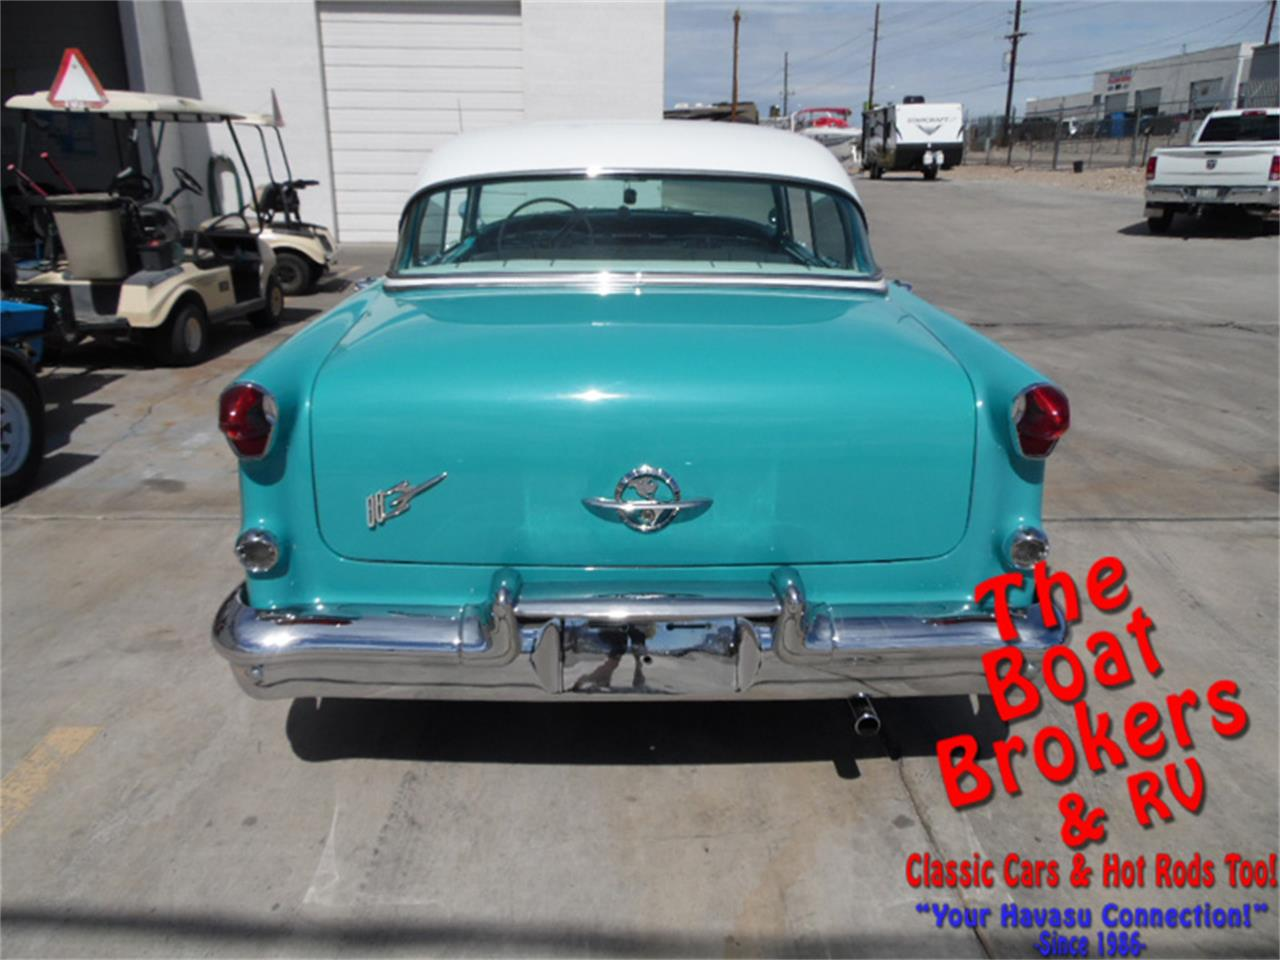 Large Picture of Classic 1955 Holiday Rocket 88 located in Lake Havasu Arizona Offered by The Boat Brokers - N2PY